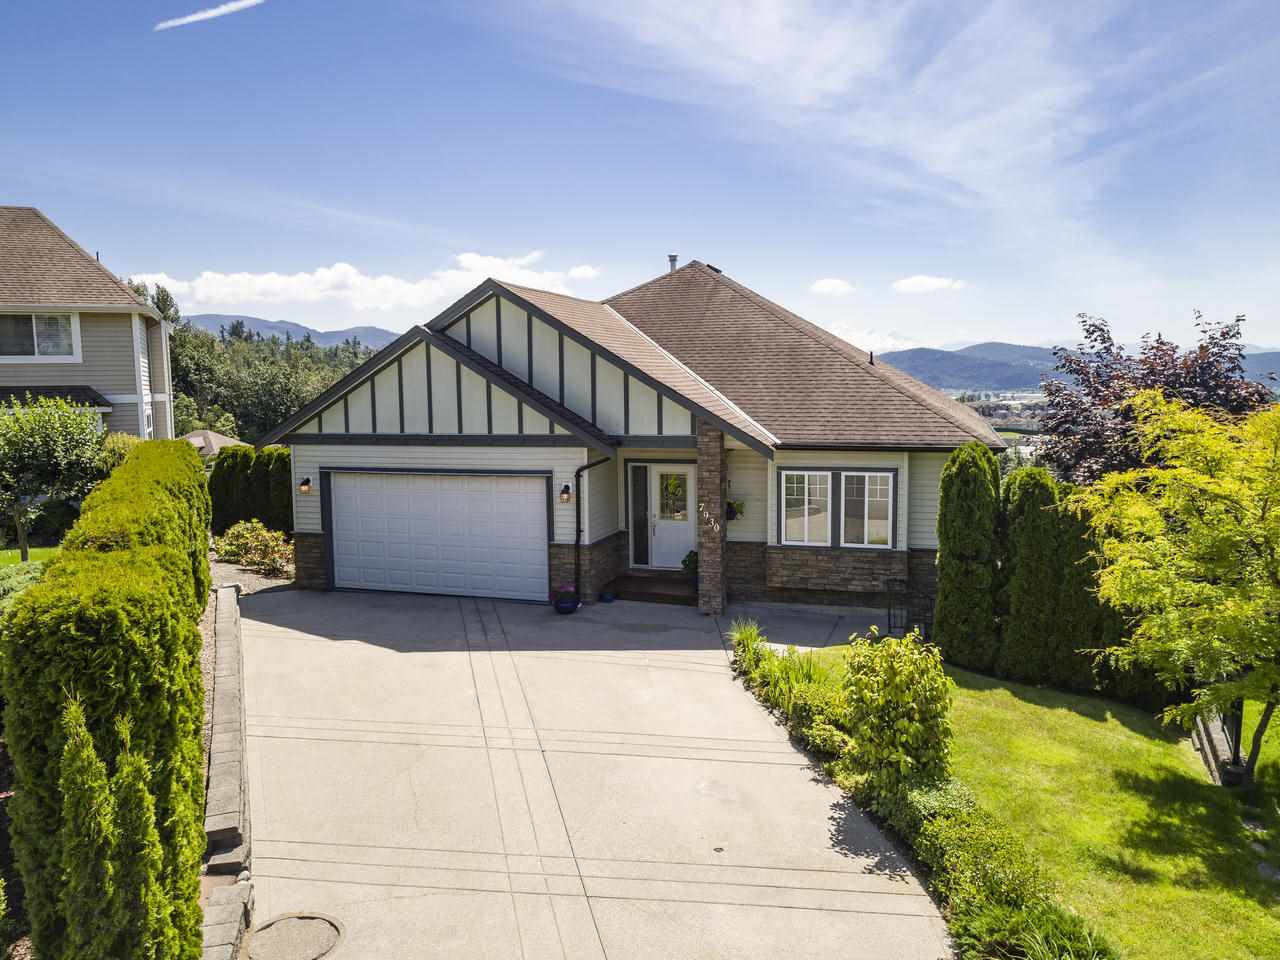 Main Photo: 7930 HUGHES Terrace in Mission: Mission BC House for sale : MLS®# R2467624